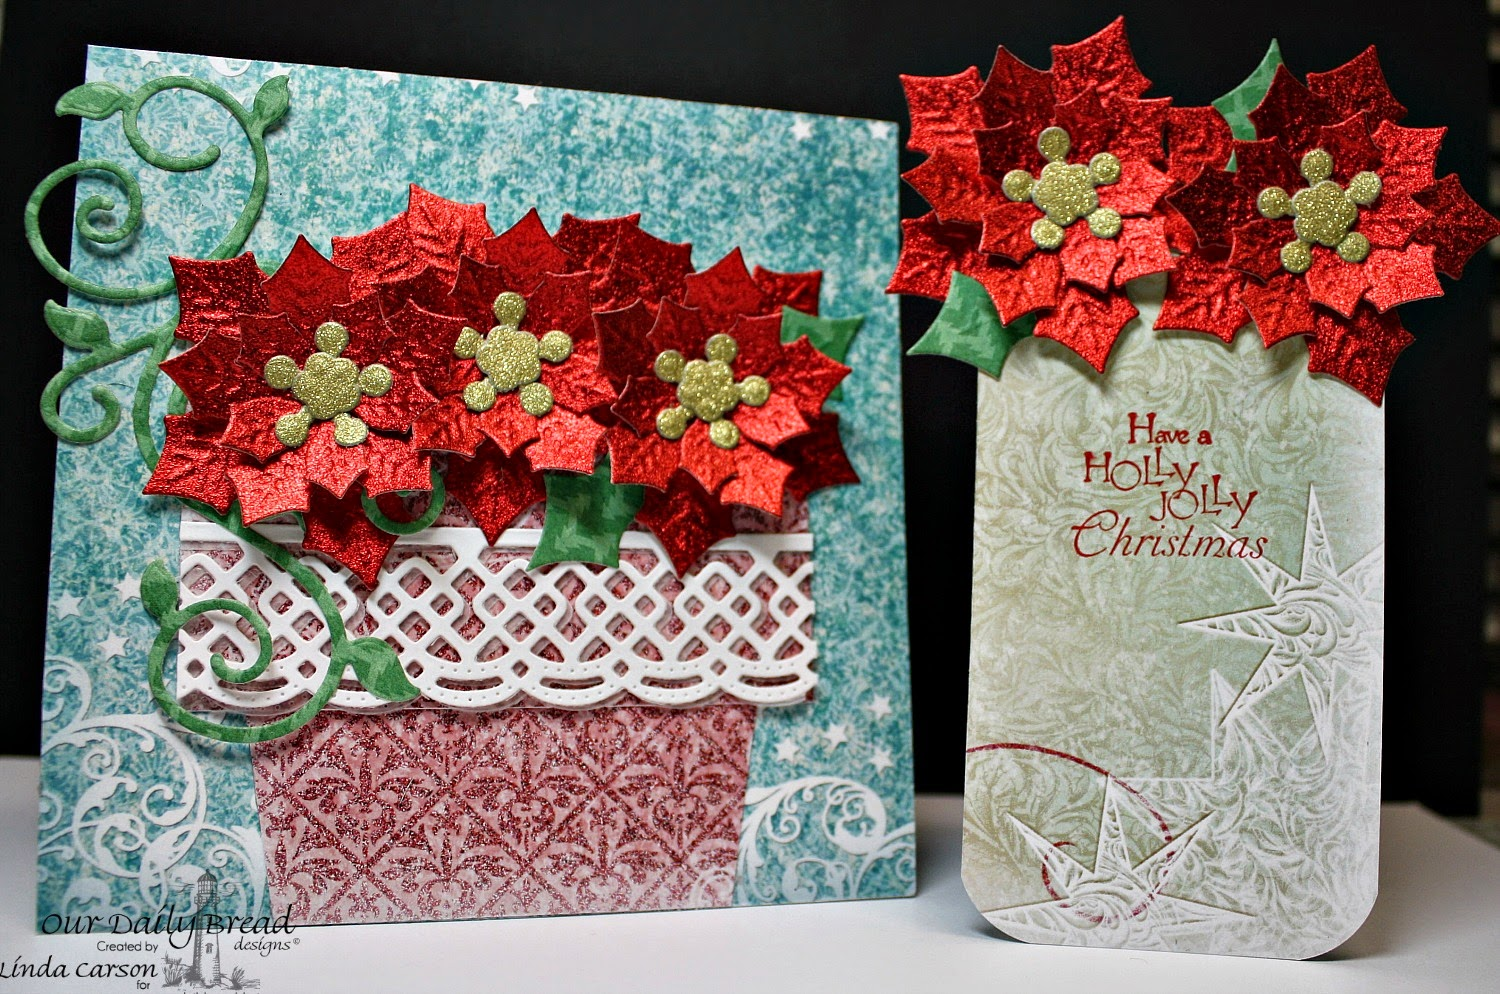 Our Daily Bread Designs, ODBD, ODBD, Holly Wreath, Circle Ornaments die, Peaceful Poinsettia die, Beautiful Borders die, Fancy Foliage die, Christmas Collection 2015, Fancy Folds Flower Pot, designer Linda Carson